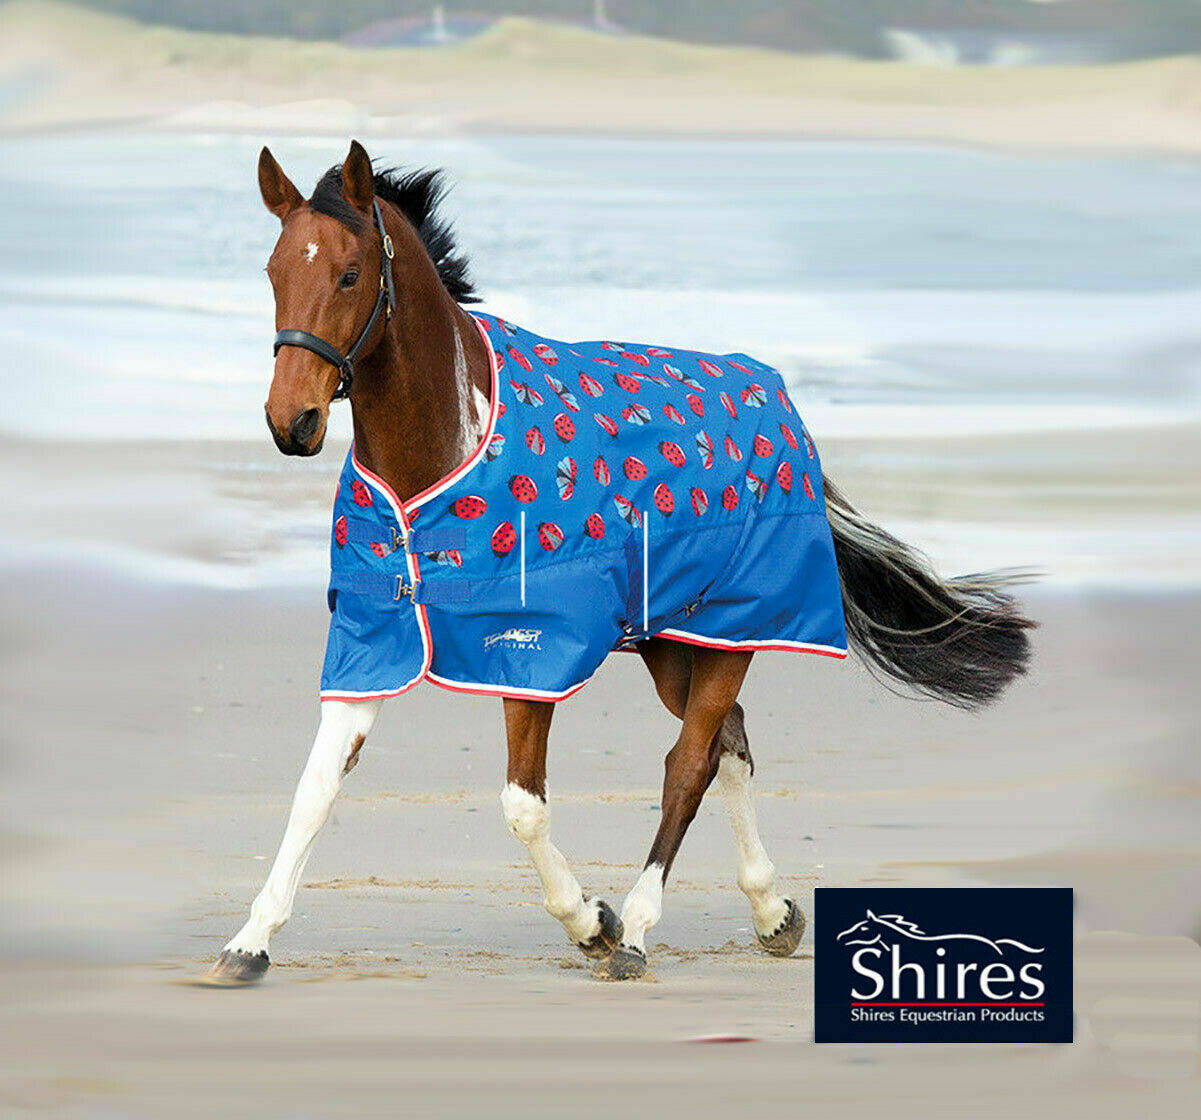 Shires tempest lite ladybird print  turnout horse rug all sizes  on sale 70% off